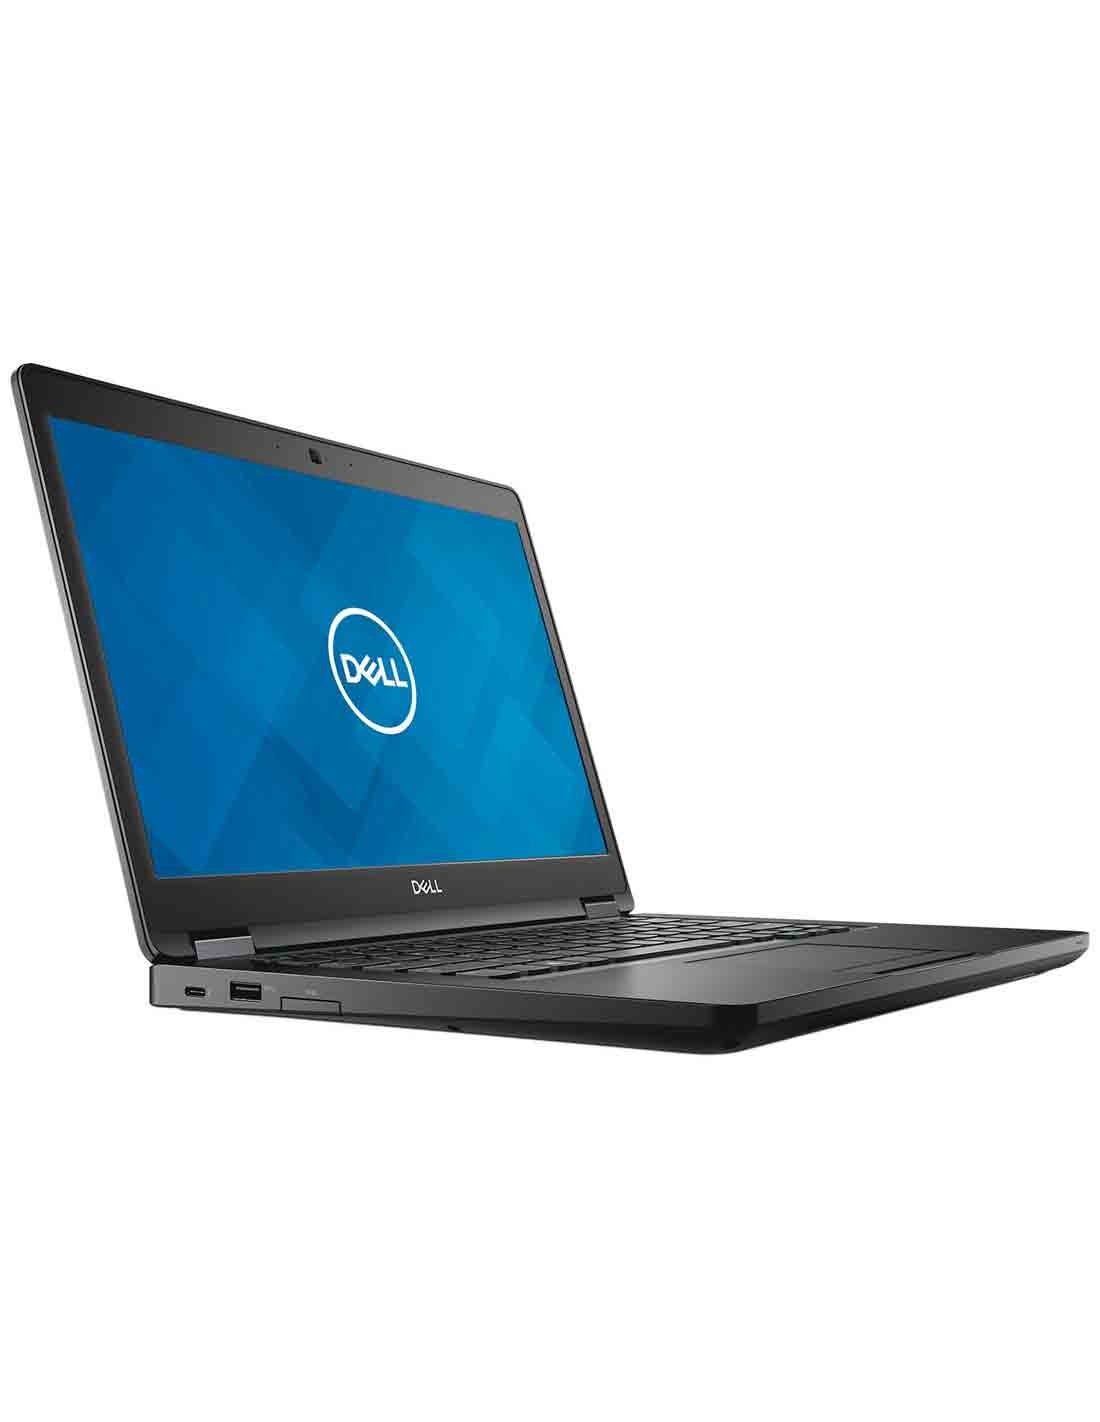 Dell Latitude 5580 i7 images and photos in Dubai computer store